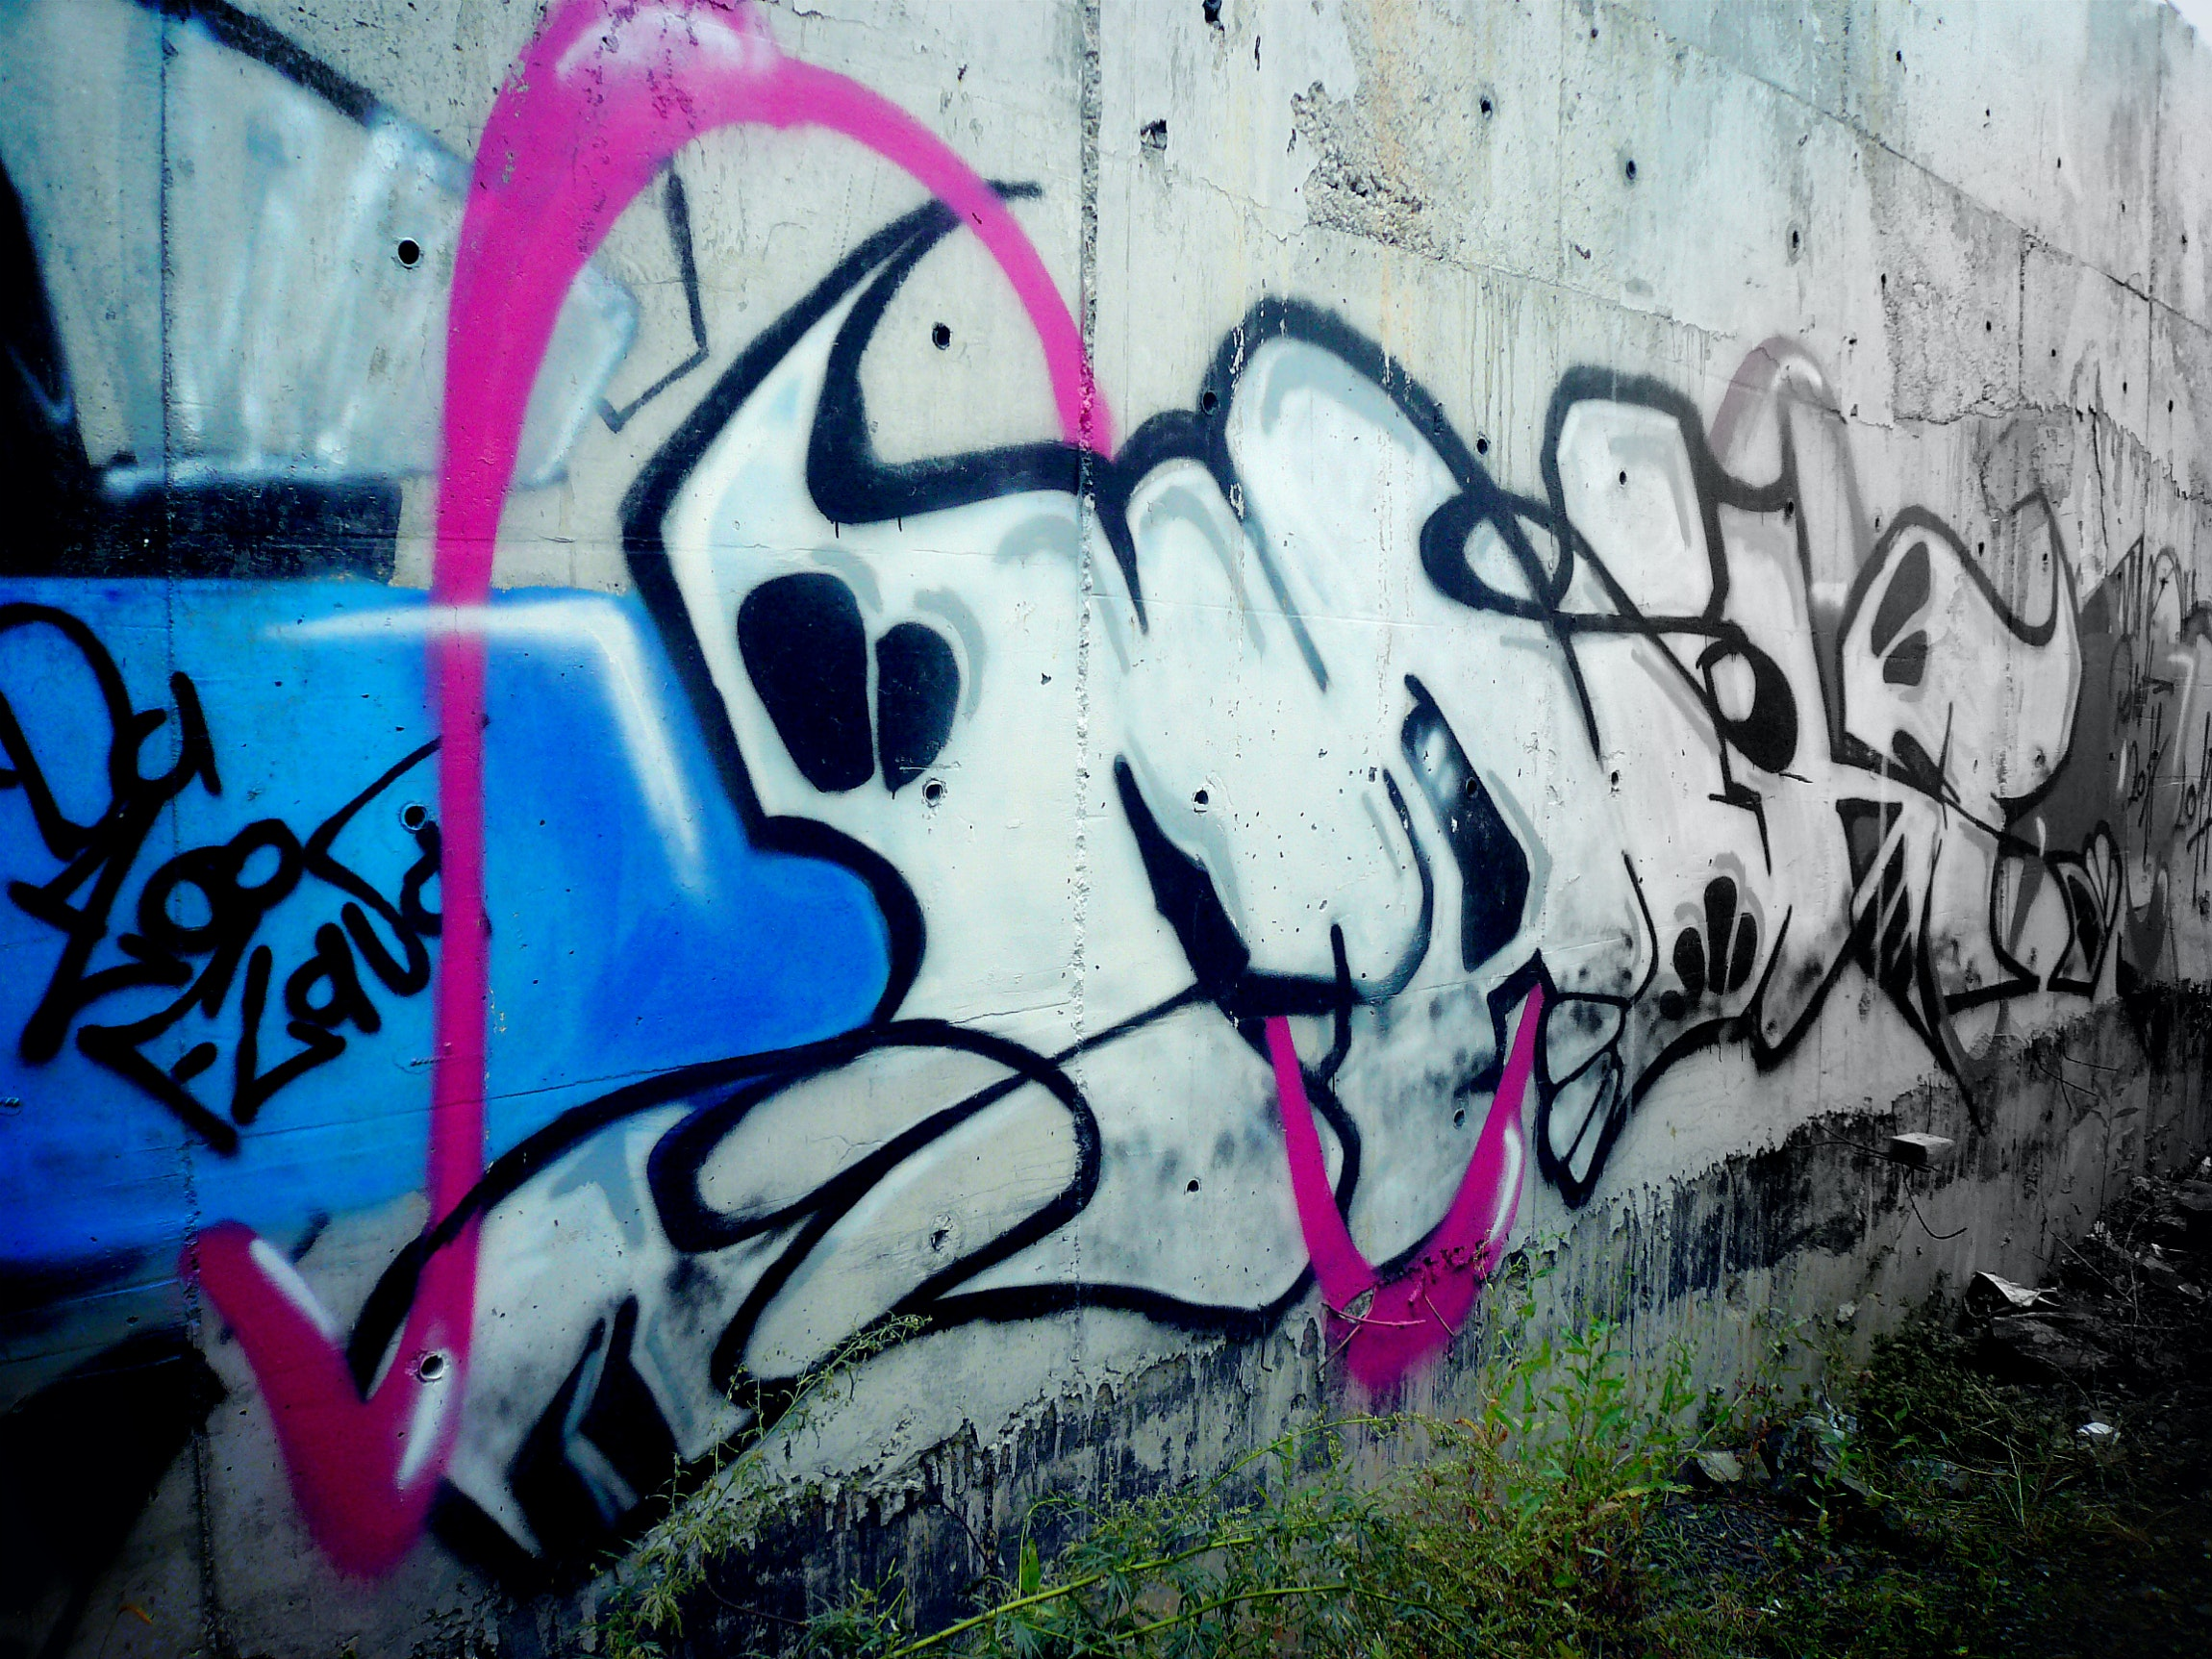 Abandoned Black And White Colorful Concrete Wall Construction Graffiti Spray Paint Wall Wallpaper And Background